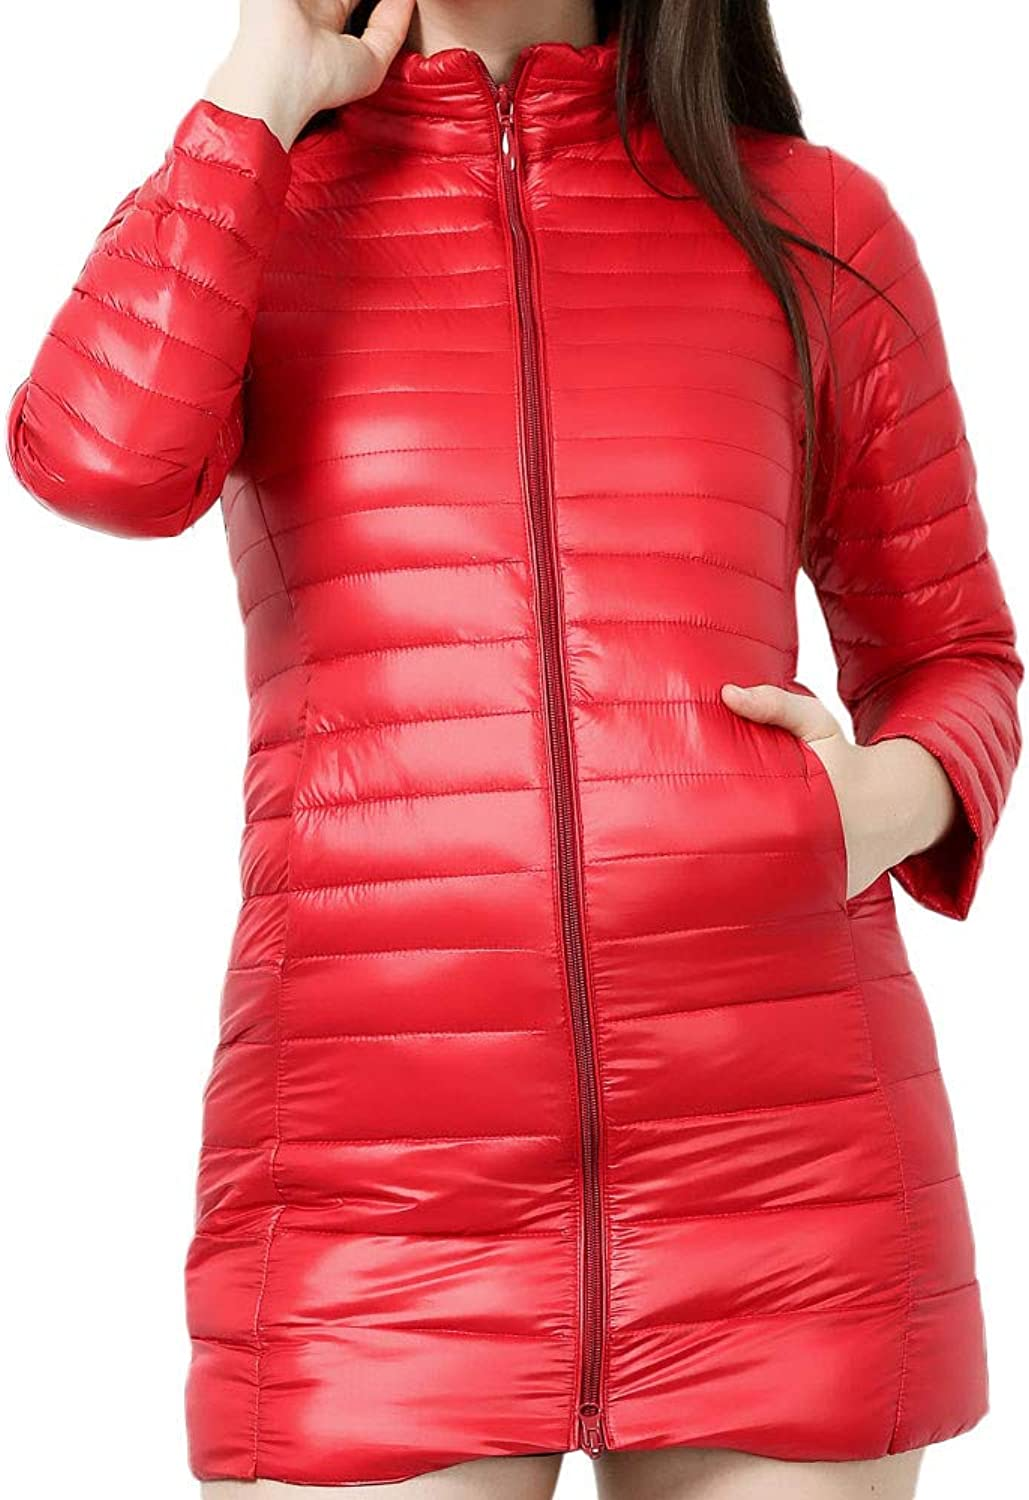 FreshZone Women's Light Weight Packable Down Jacket Coat Stand Collar Long Lined Snowsuits with Storage Bag